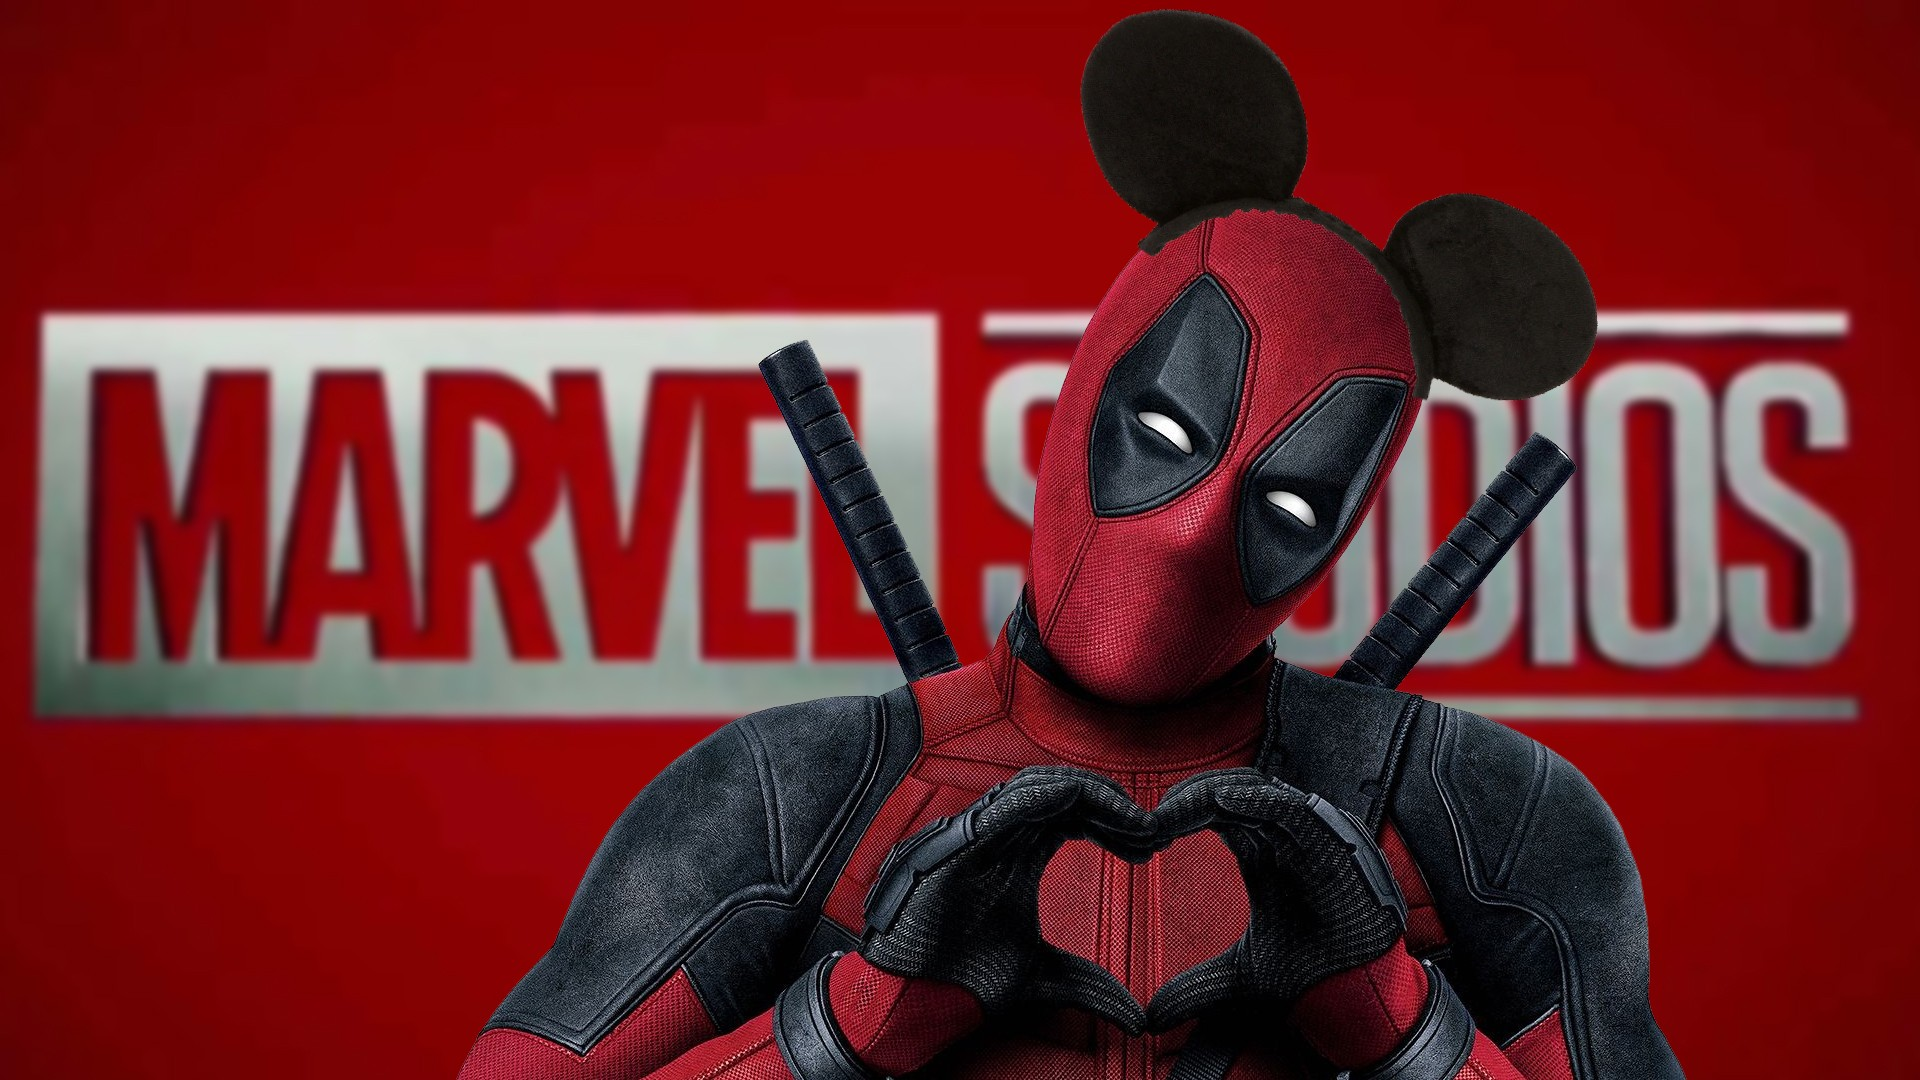 Deadpool 3 Plot Of The Story Cast Members Release Date Trailer And More Thenationroar